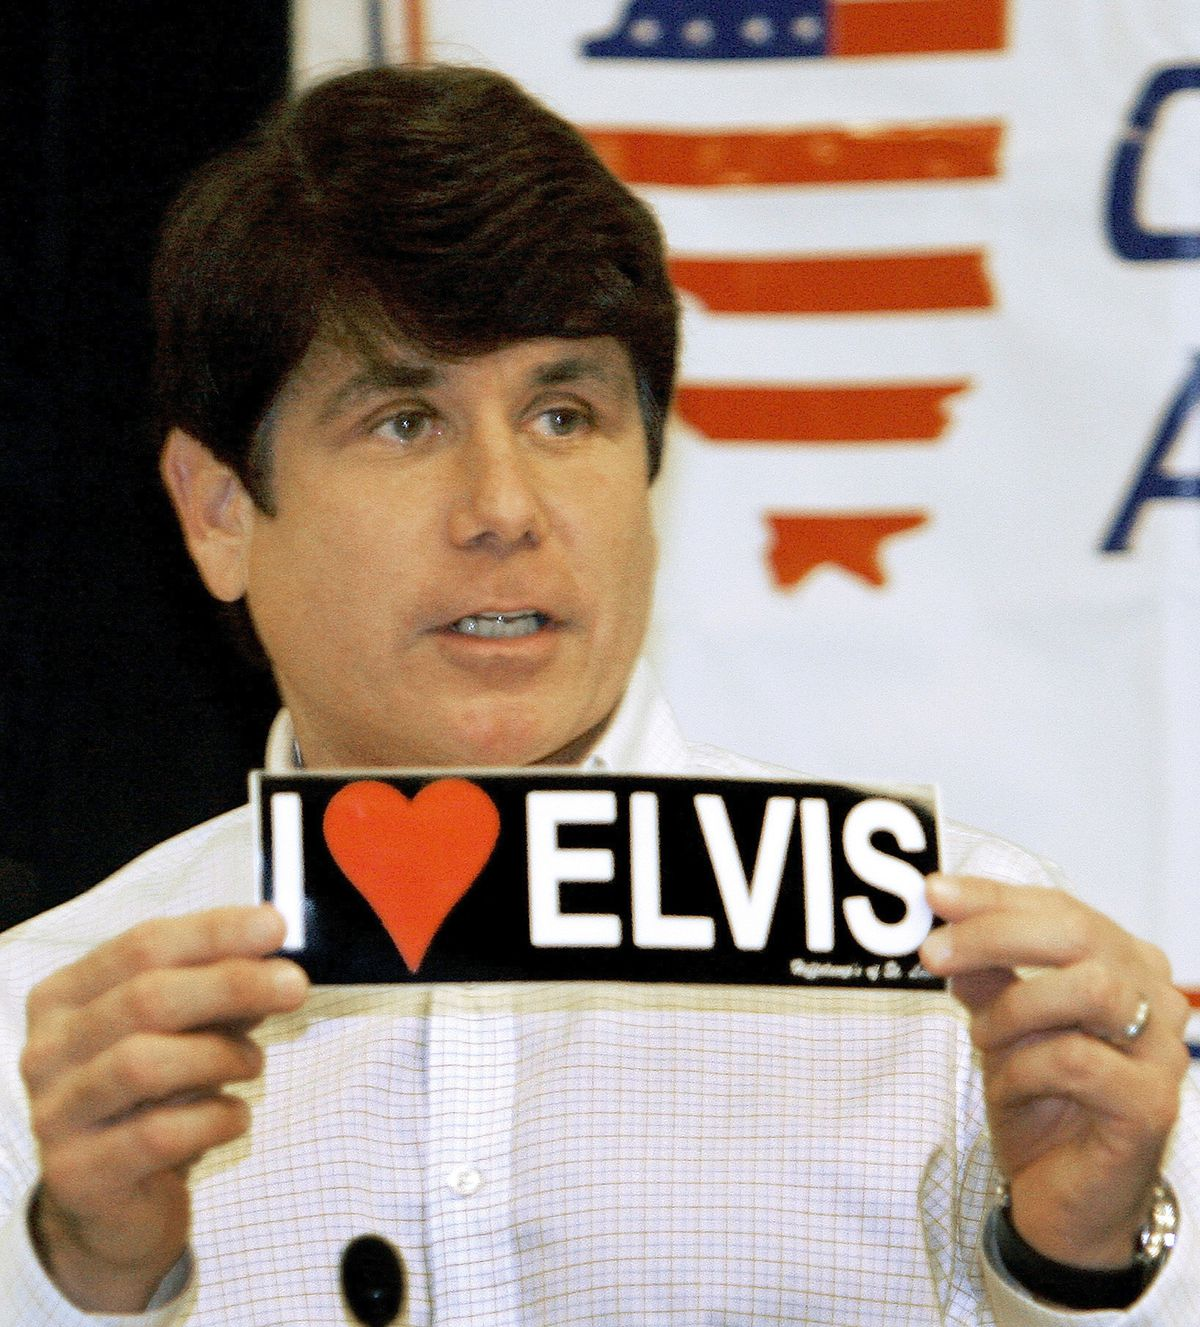 Illinois former Gov. Rod Blagojevich, an Elvis Presley fan, shown in 2007, has performed with an Elvis-inspired rock band while in prison.   Seth Perlman/Associated Press